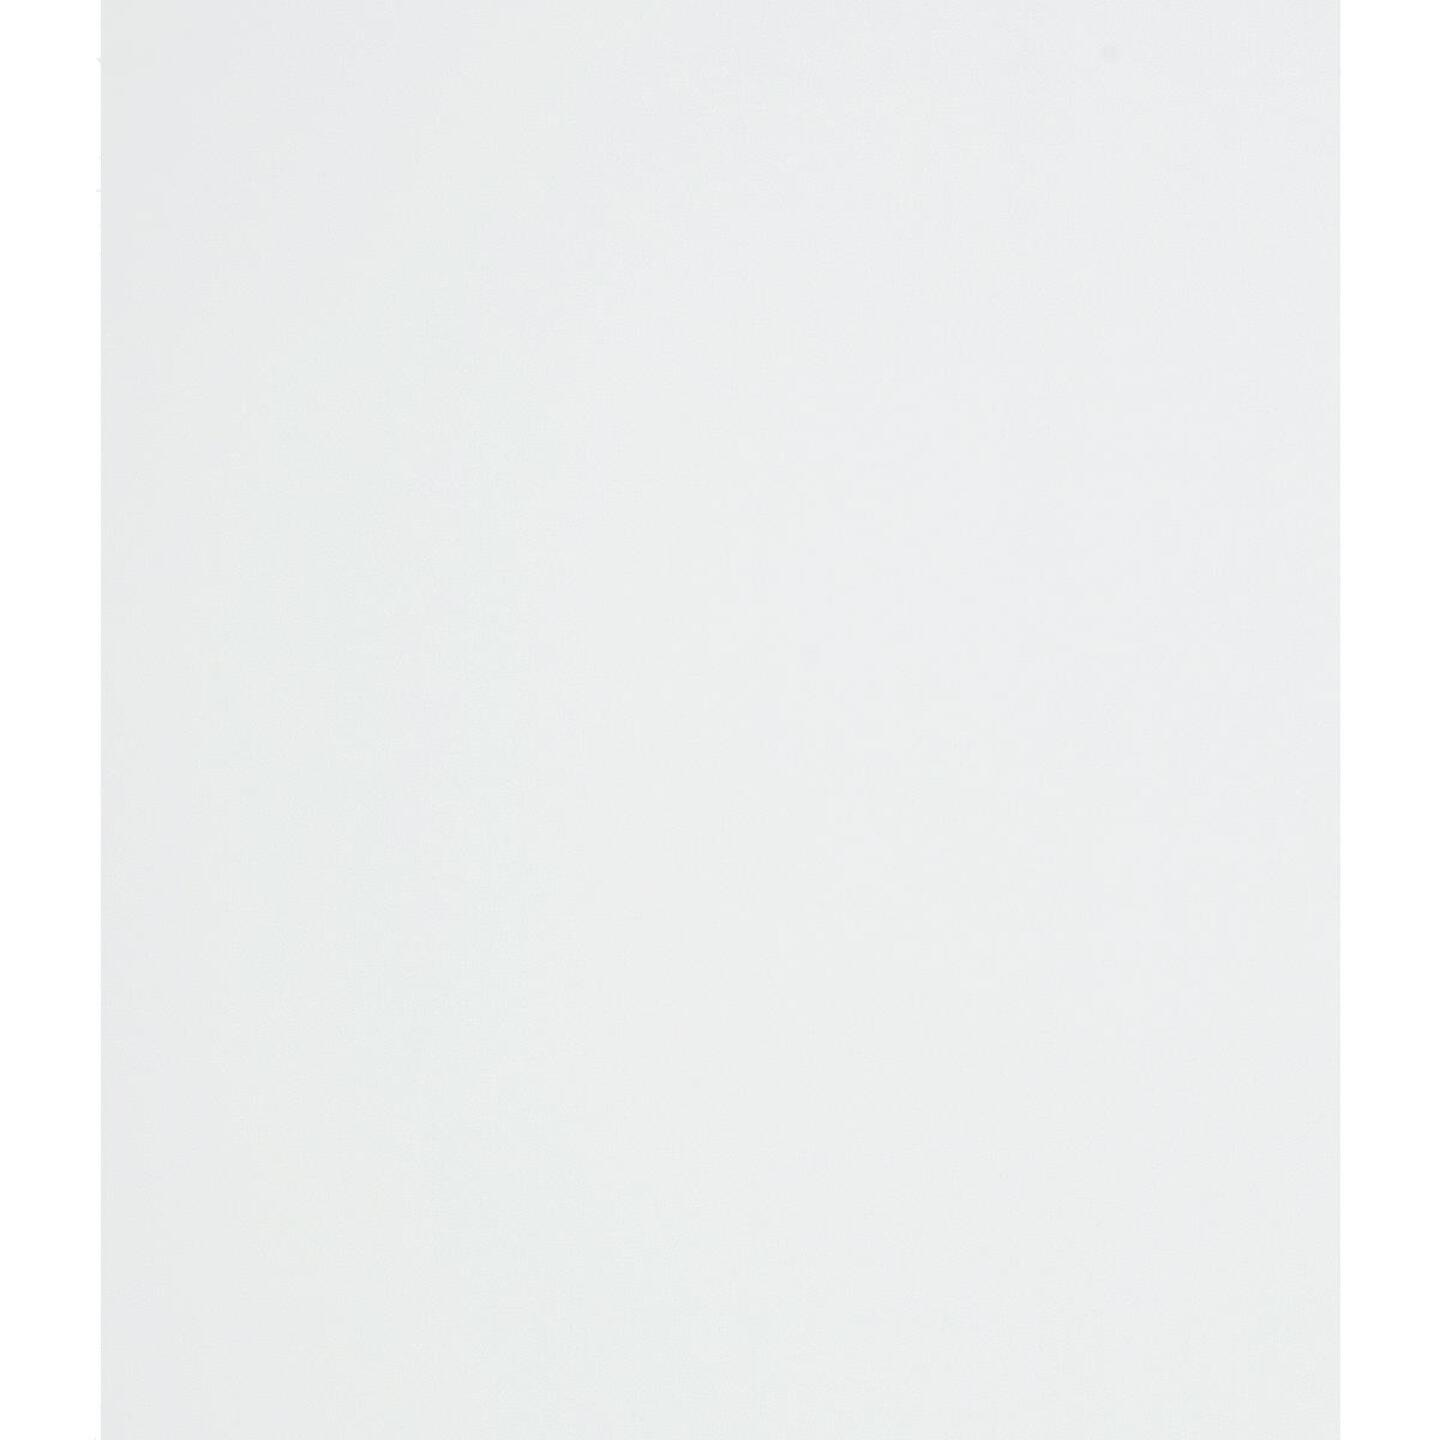 DPI 4 Ft. x 8 Ft. x 1/8 In. White Smooth Wall Paneling Image 2